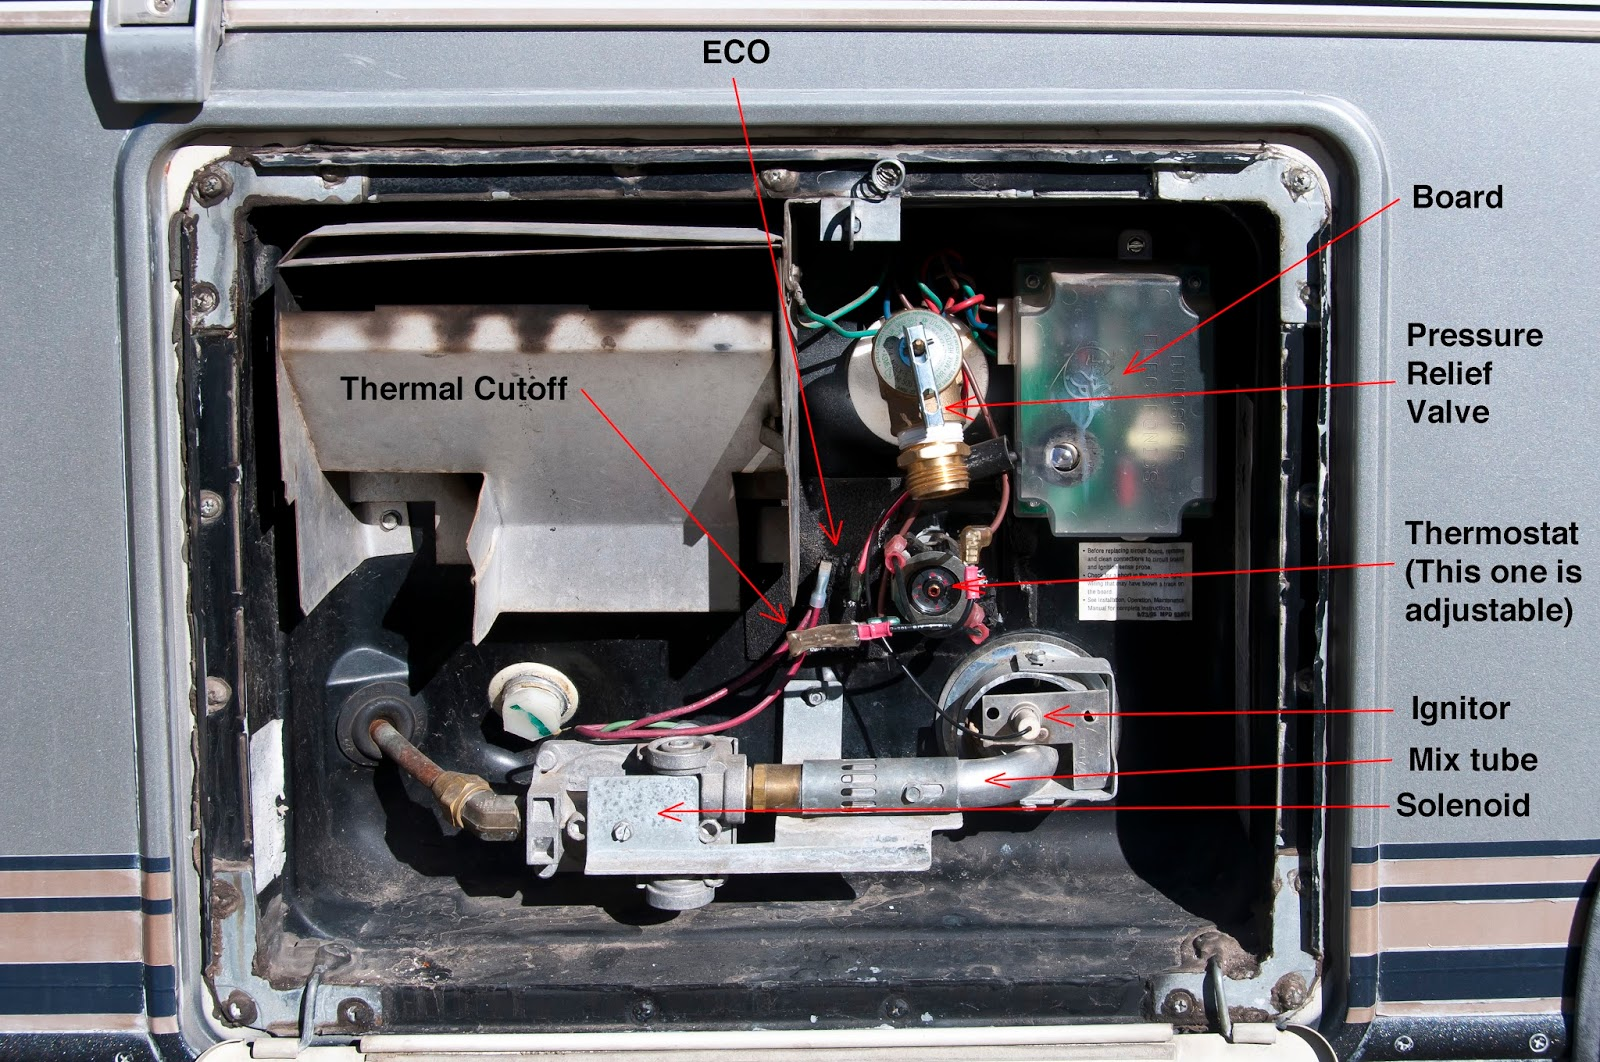 atwood gas water heater wiring diagram cat 5 for telephone the lazy daze companion hot intro